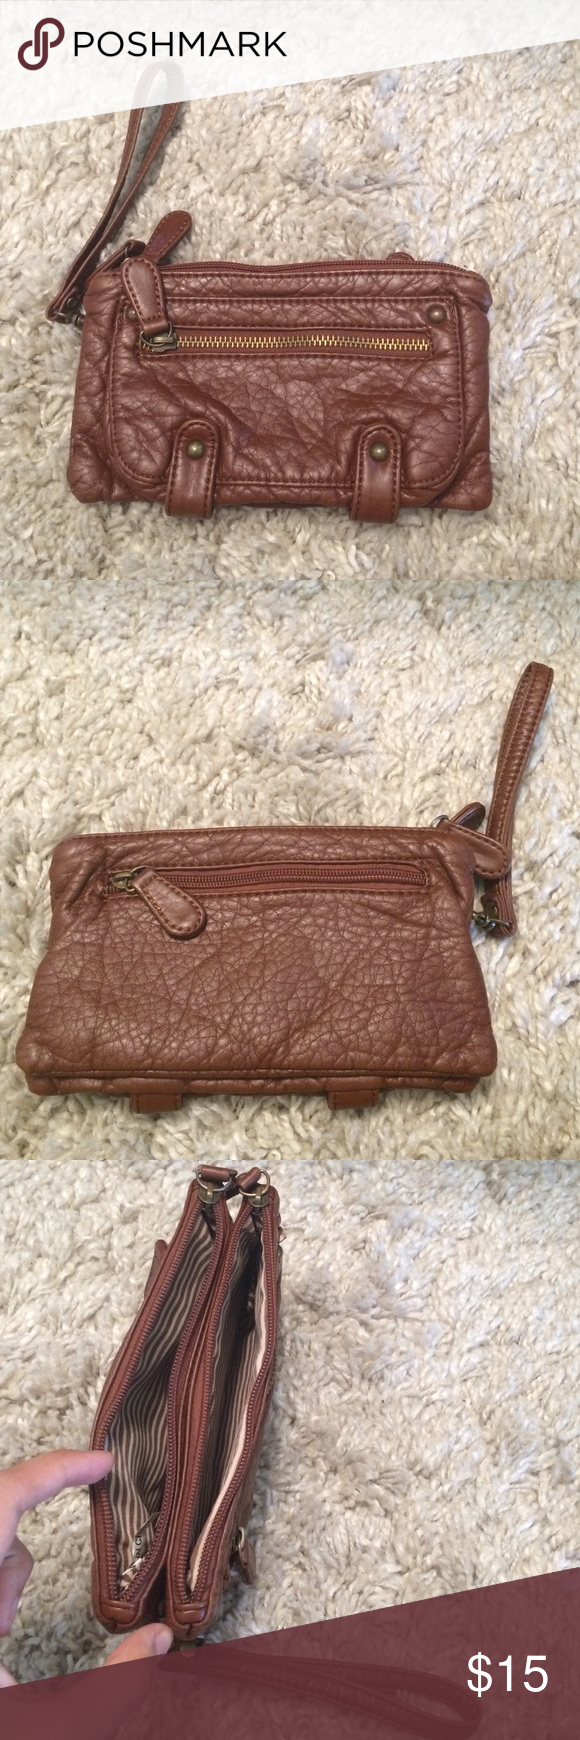 Wristlet Brown wristlet. 4 pockets. No flaws. Bags Clutches & Wristlets